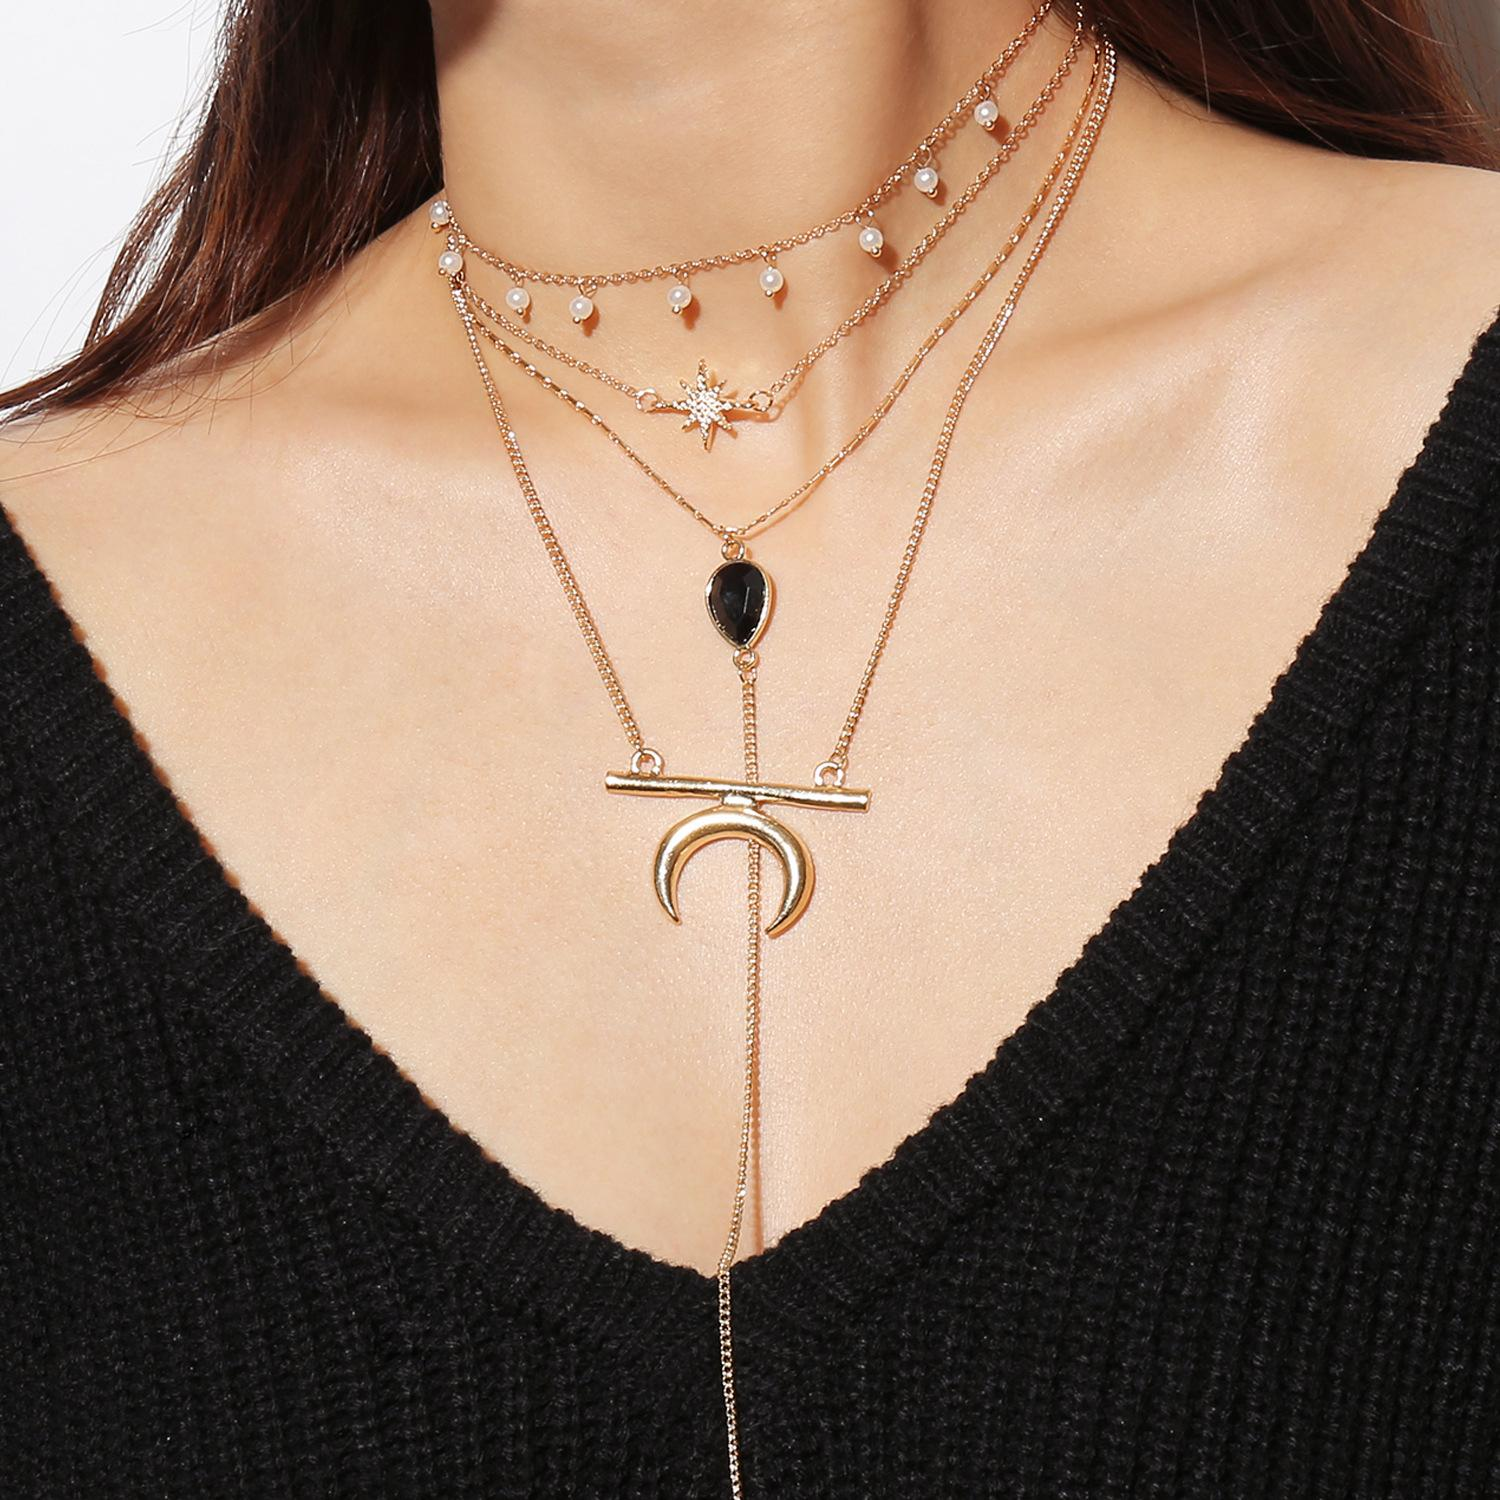 Fashion Necklaces for Women 2019 Statement Layered Necklace Water Droplets Pendant Crystal Necklace Gold Chain Choker